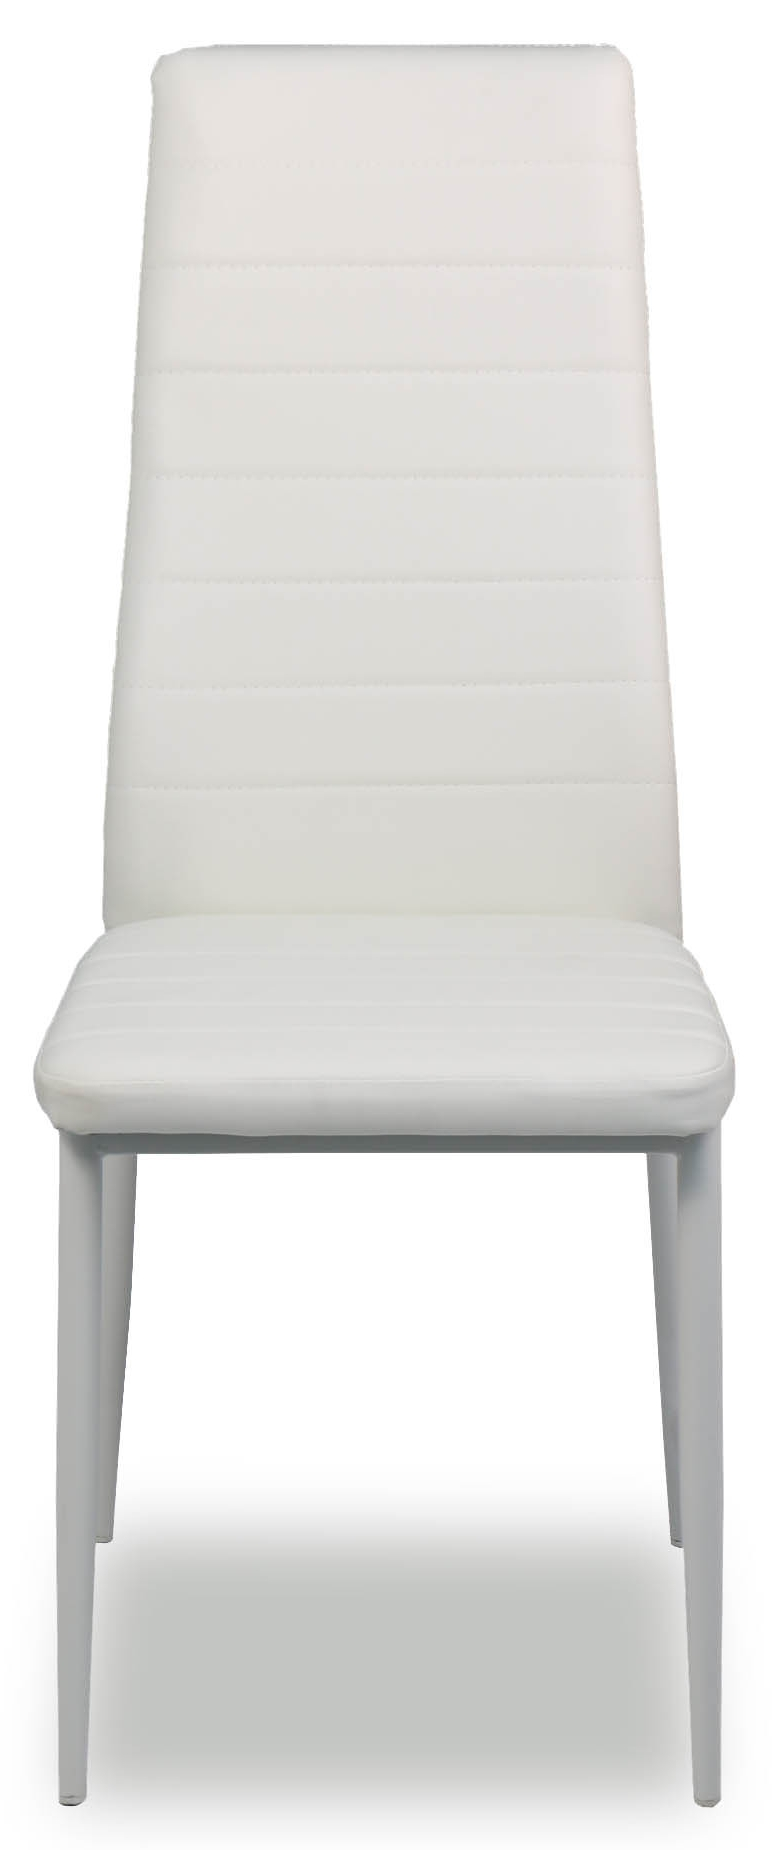 Best And Newest Quinn Dining Chair White (Gallery 11 of 25)